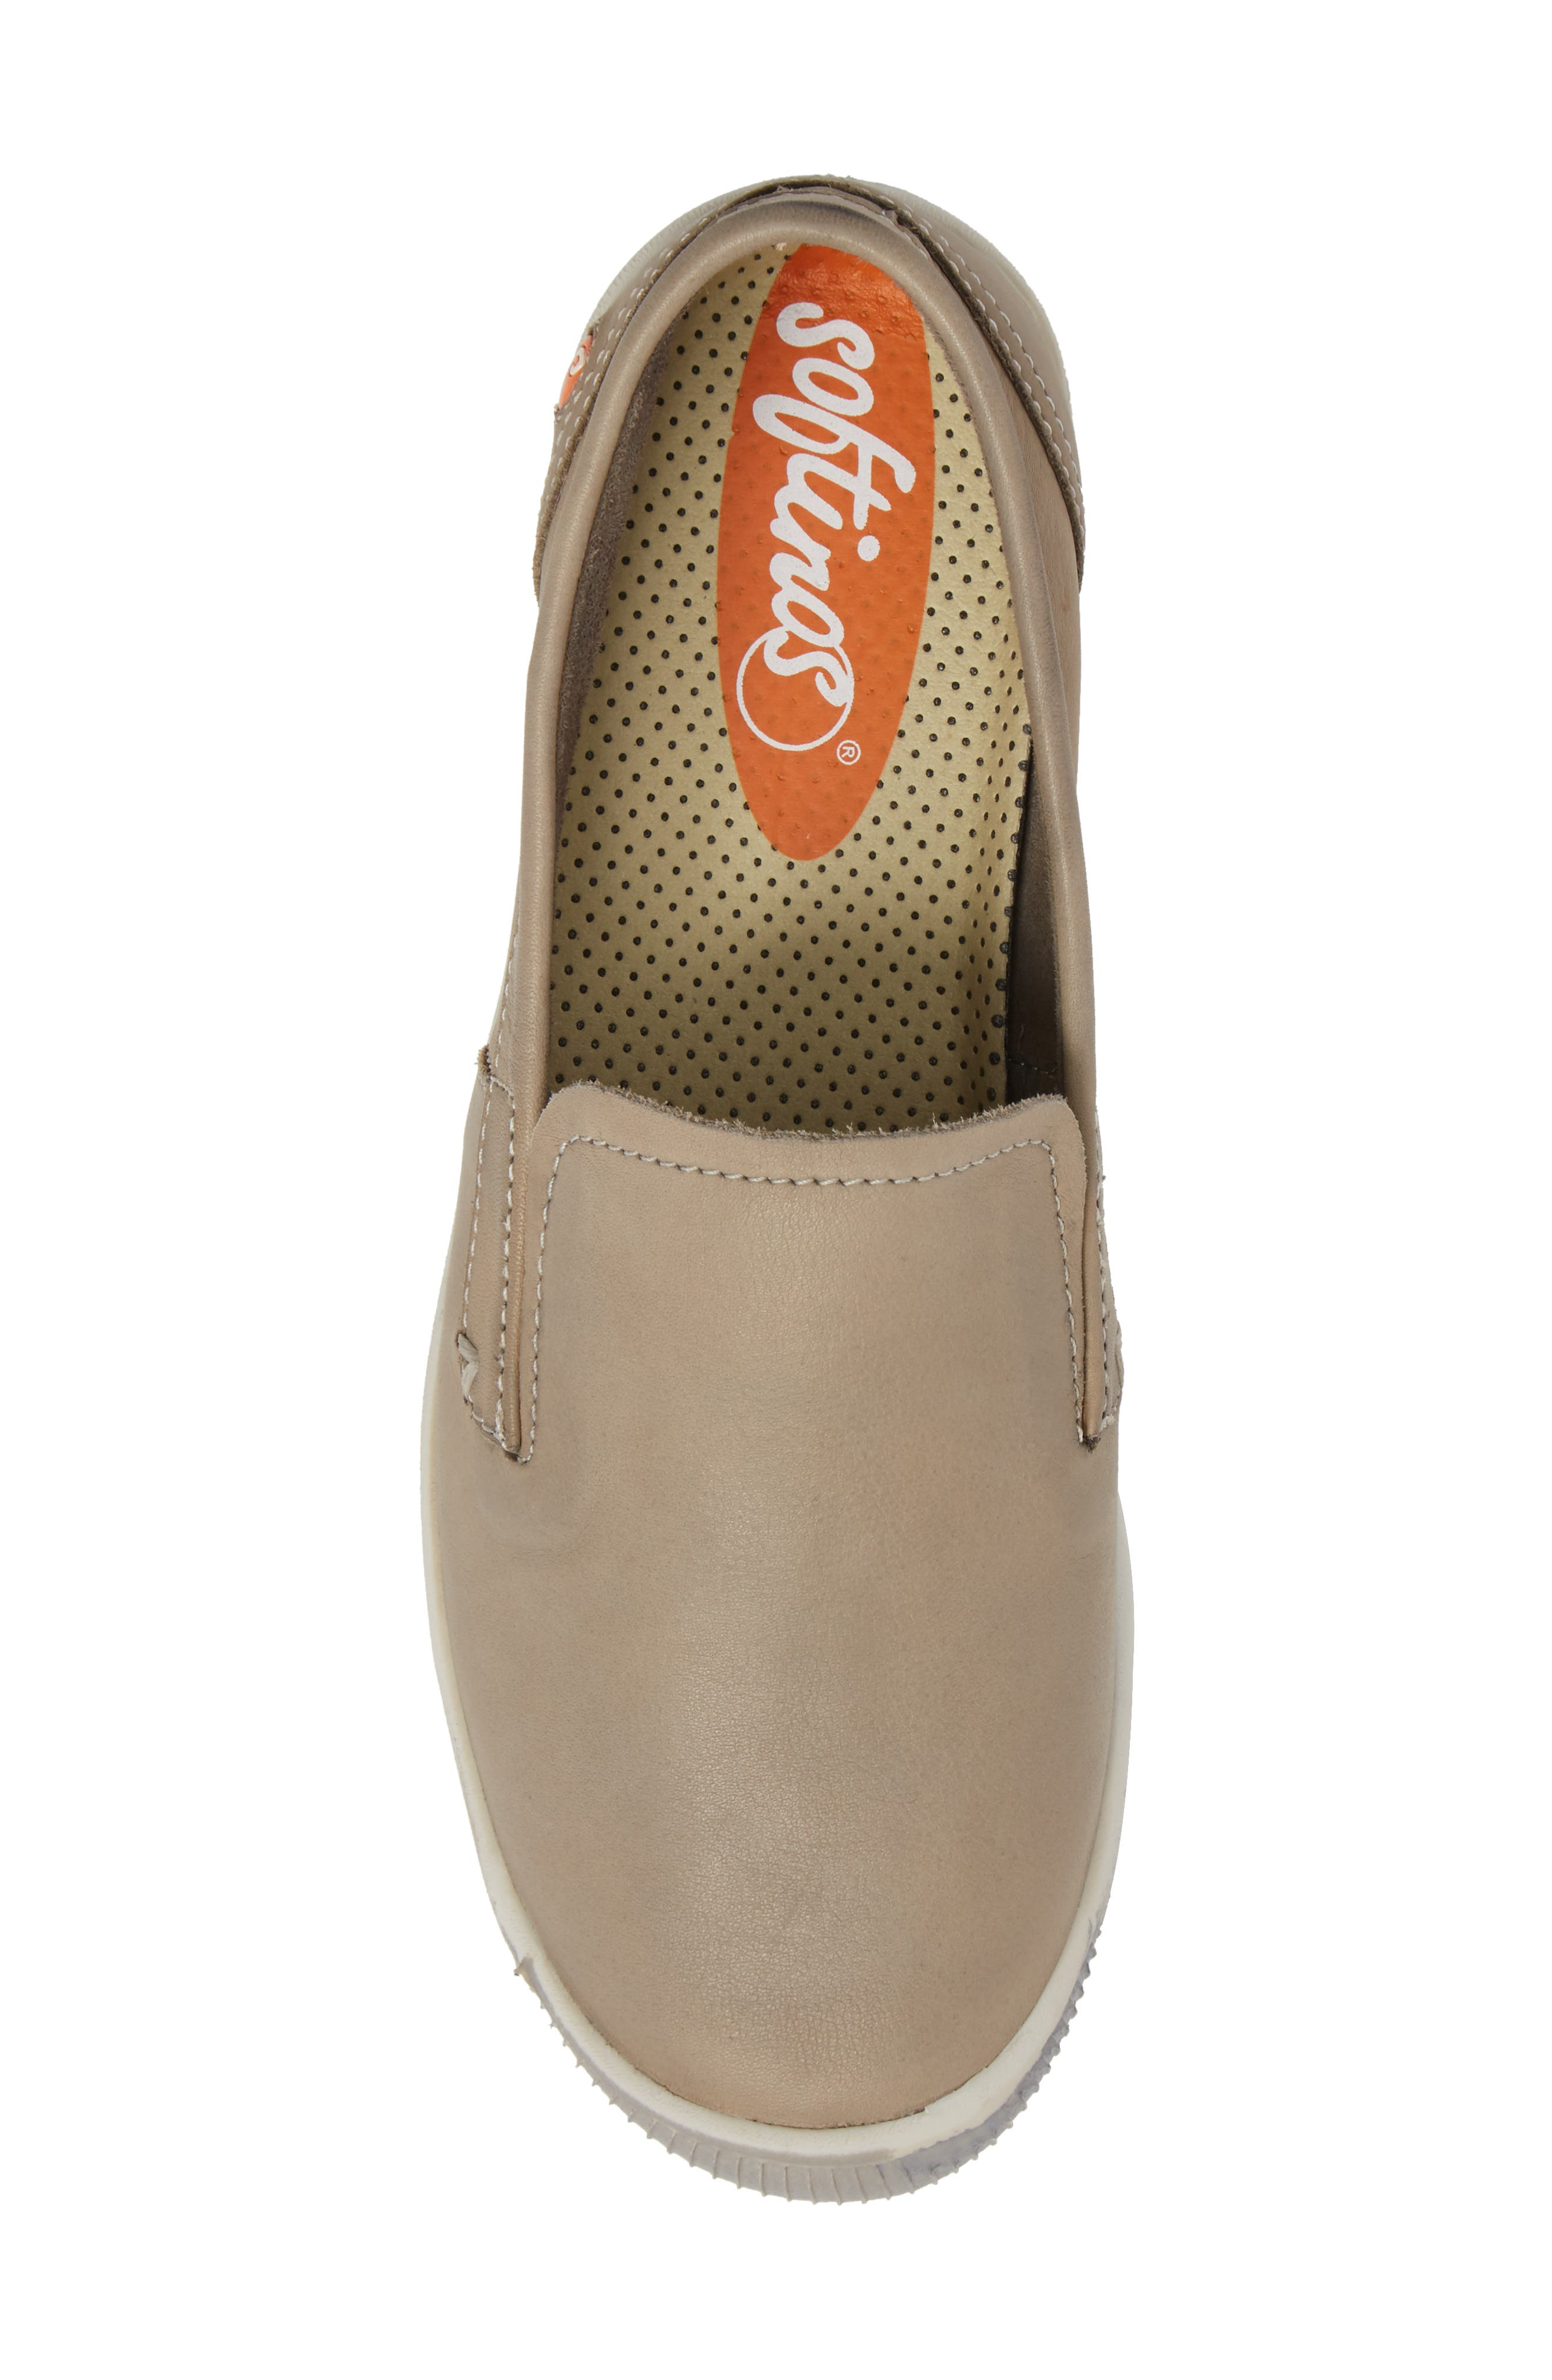 Ita Slip-On Sneaker,                             Alternate thumbnail 5, color,                             TAUPE/ TAUPE LEATHER